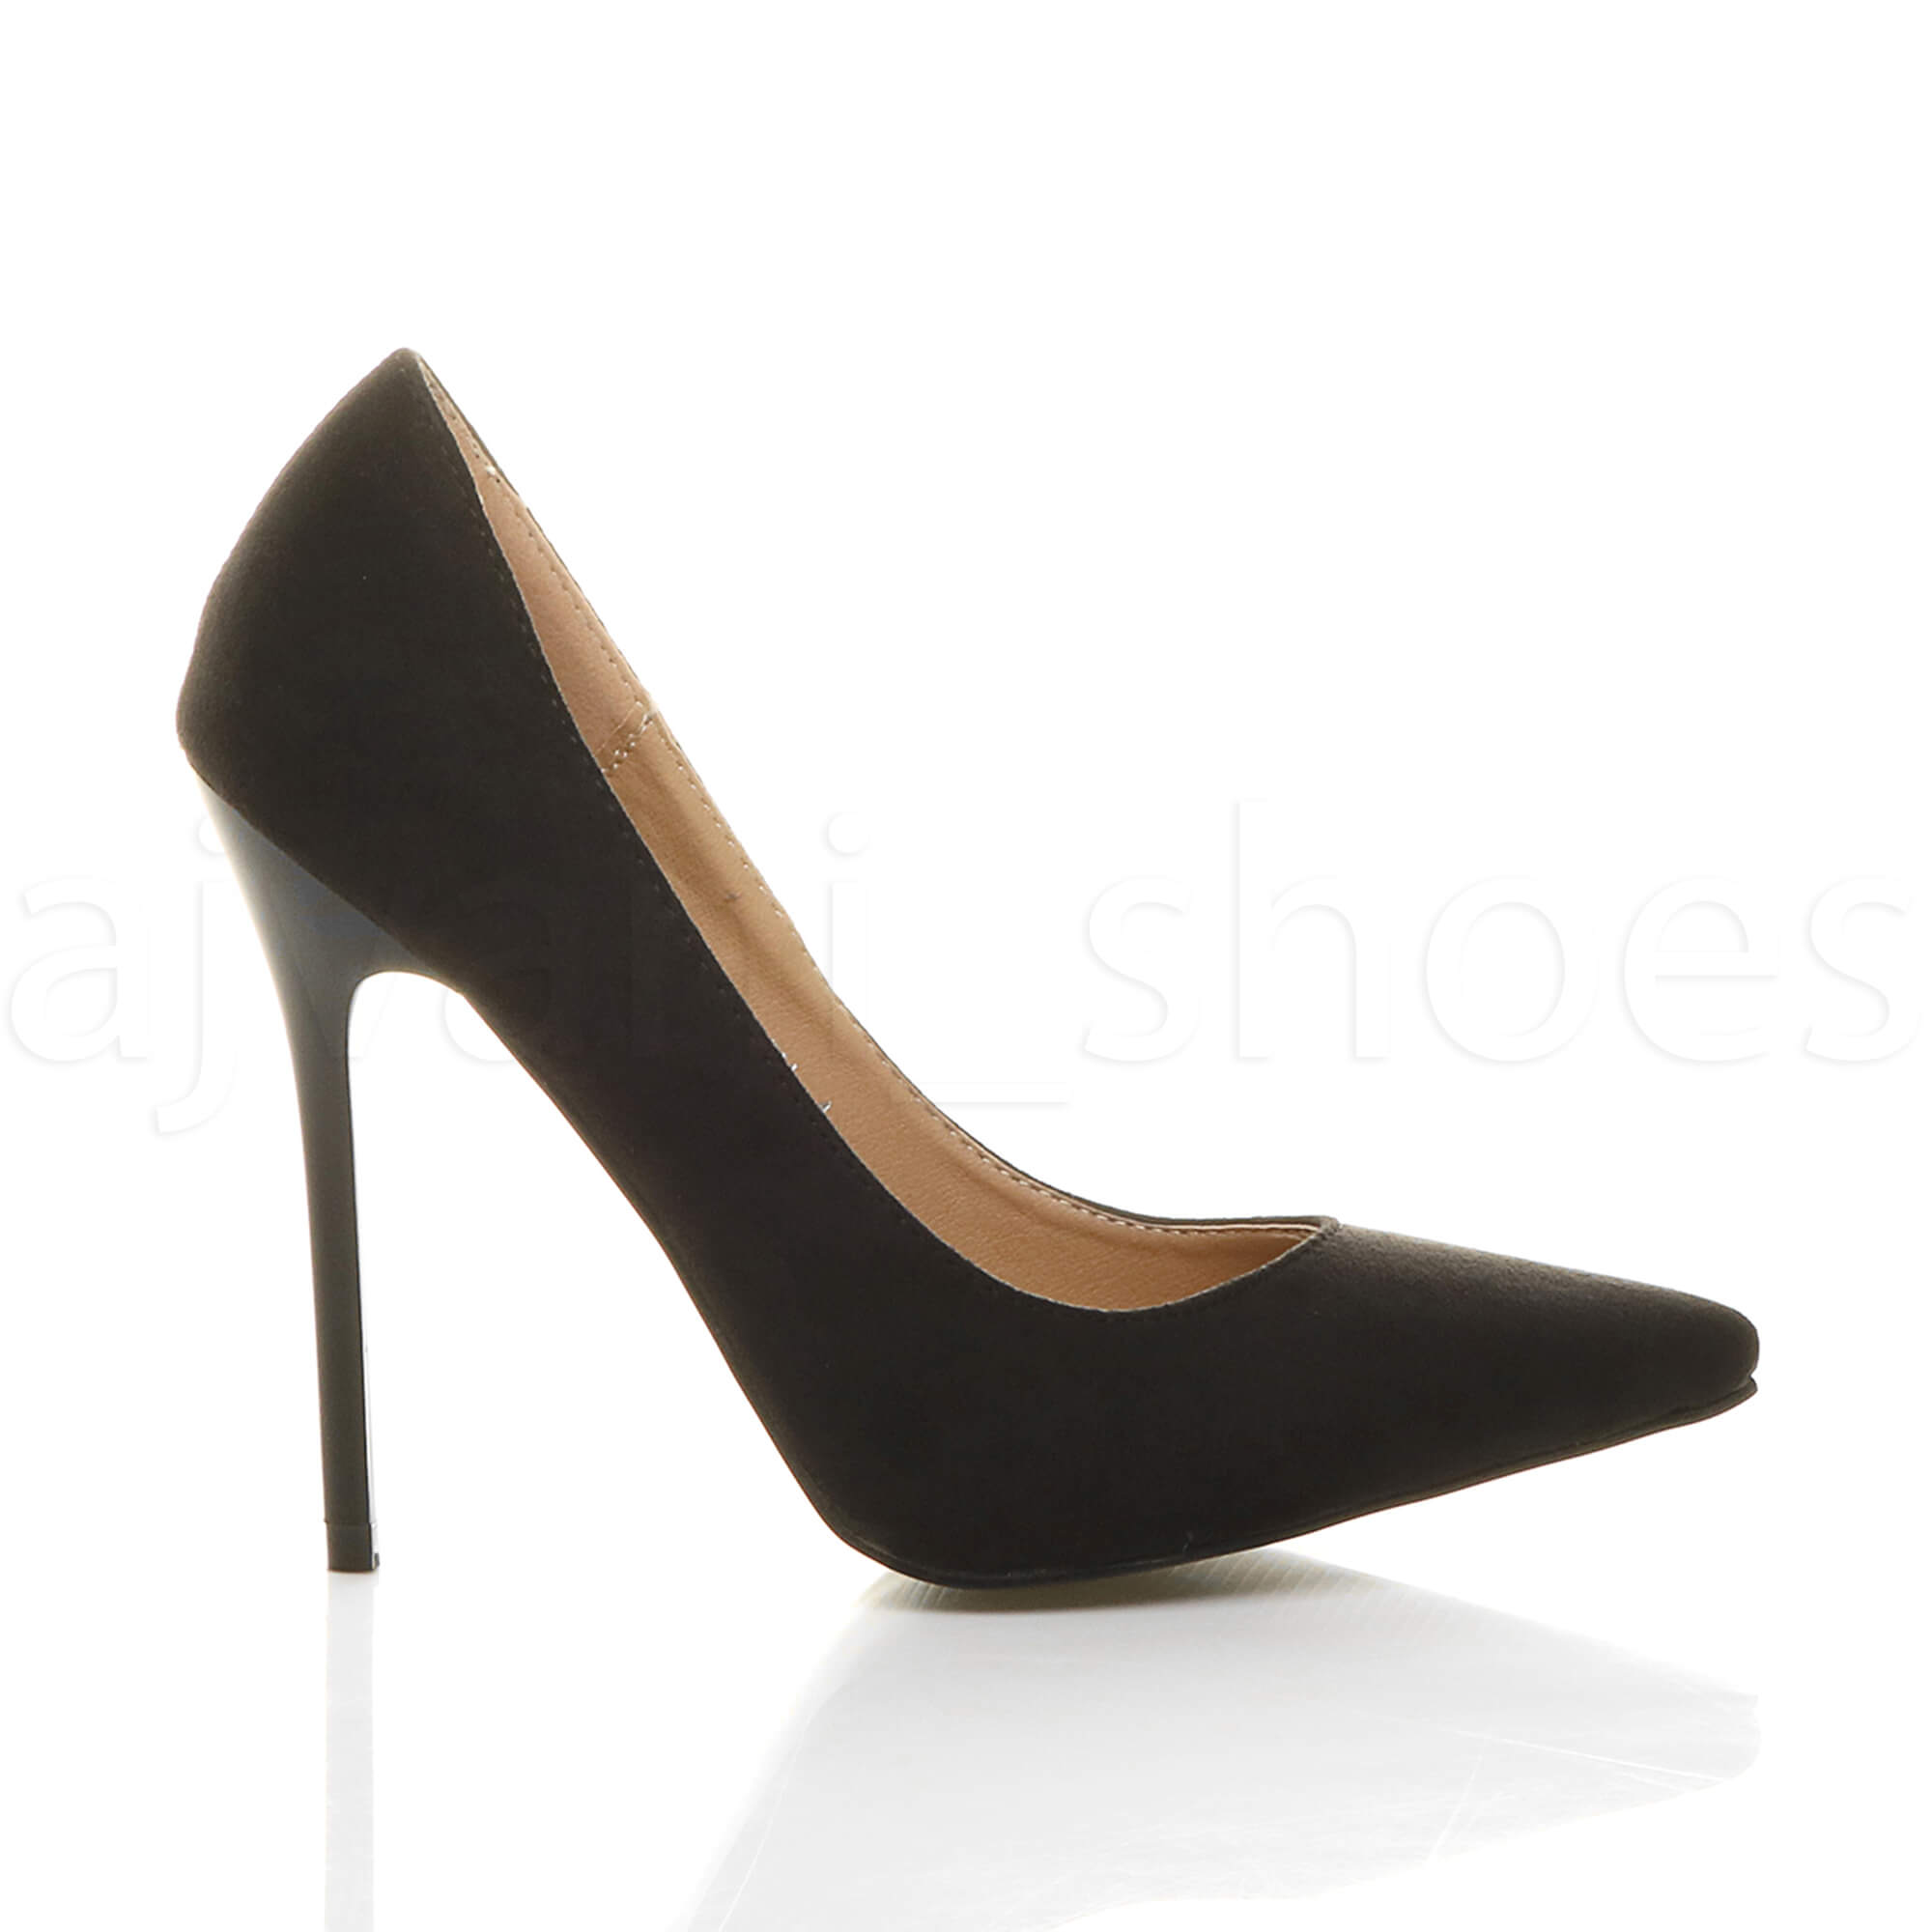 WOMENS-LADIES-HIGH-HEEL-POINTED-CONTRAST-COURT-SMART-PARTY-WORK-SHOES-PUMPS-SIZE thumbnail 27